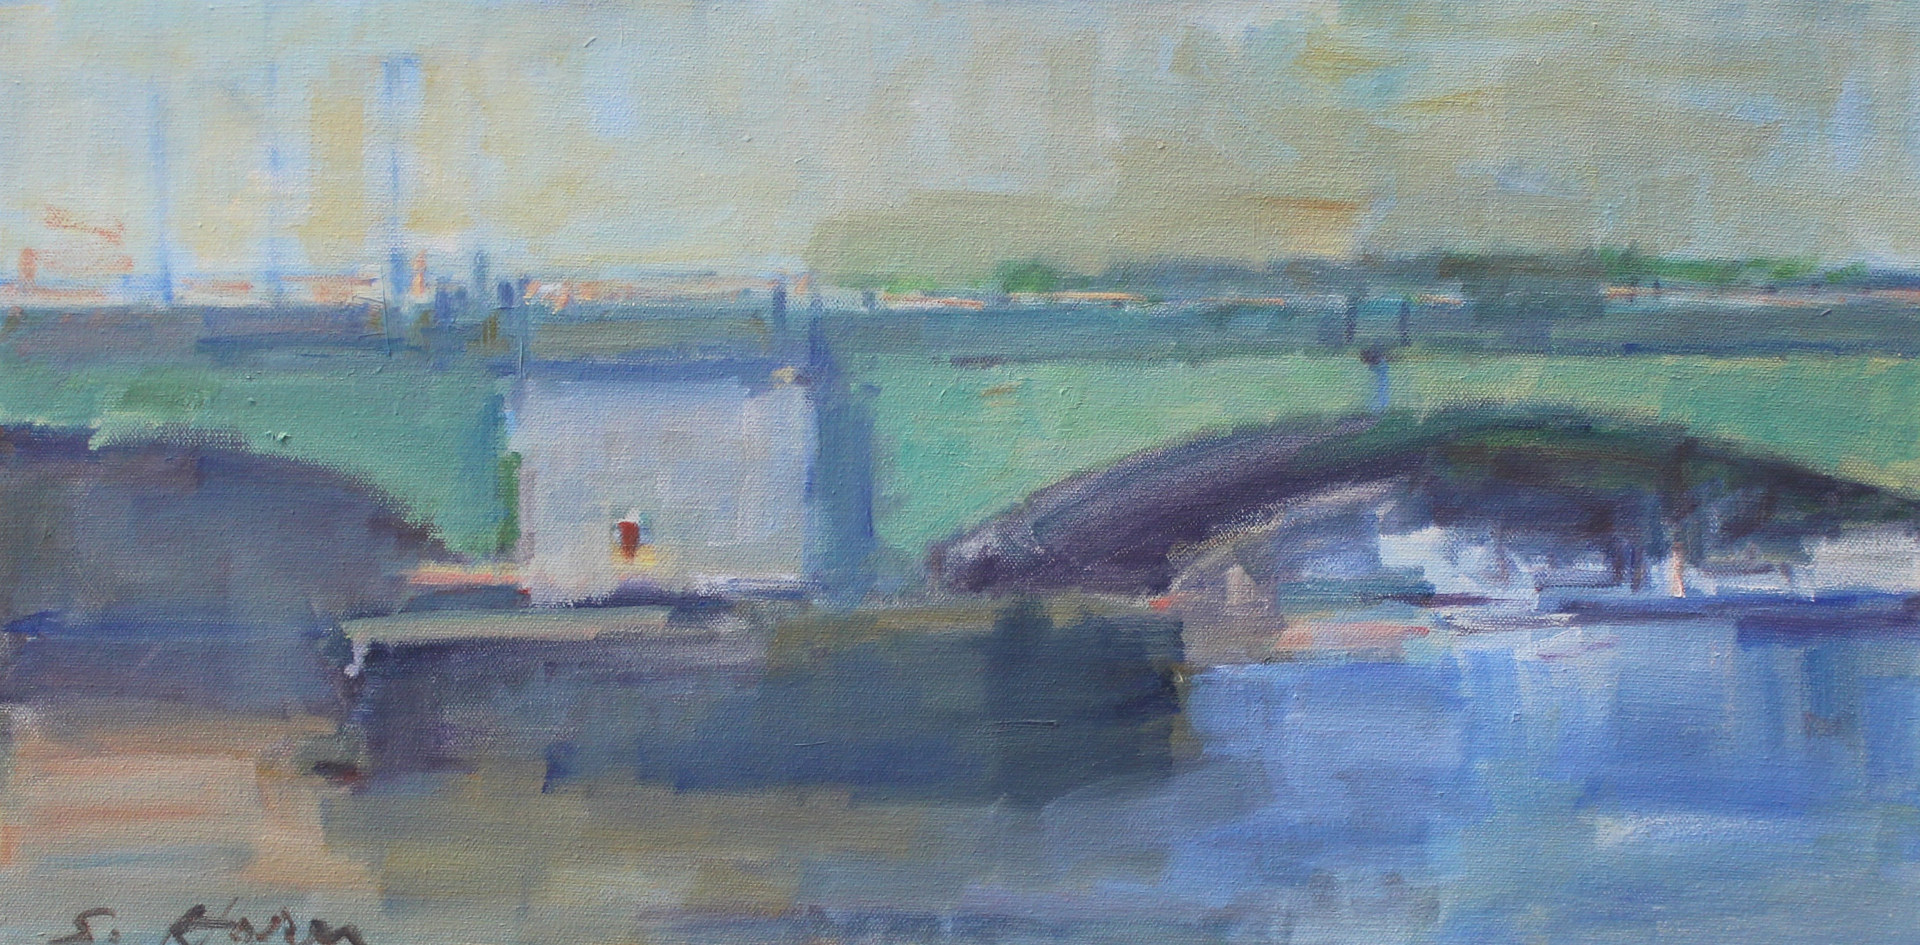 "Prescott Bridge, oil on canvas, 12 x 24"" by Susan Horn"